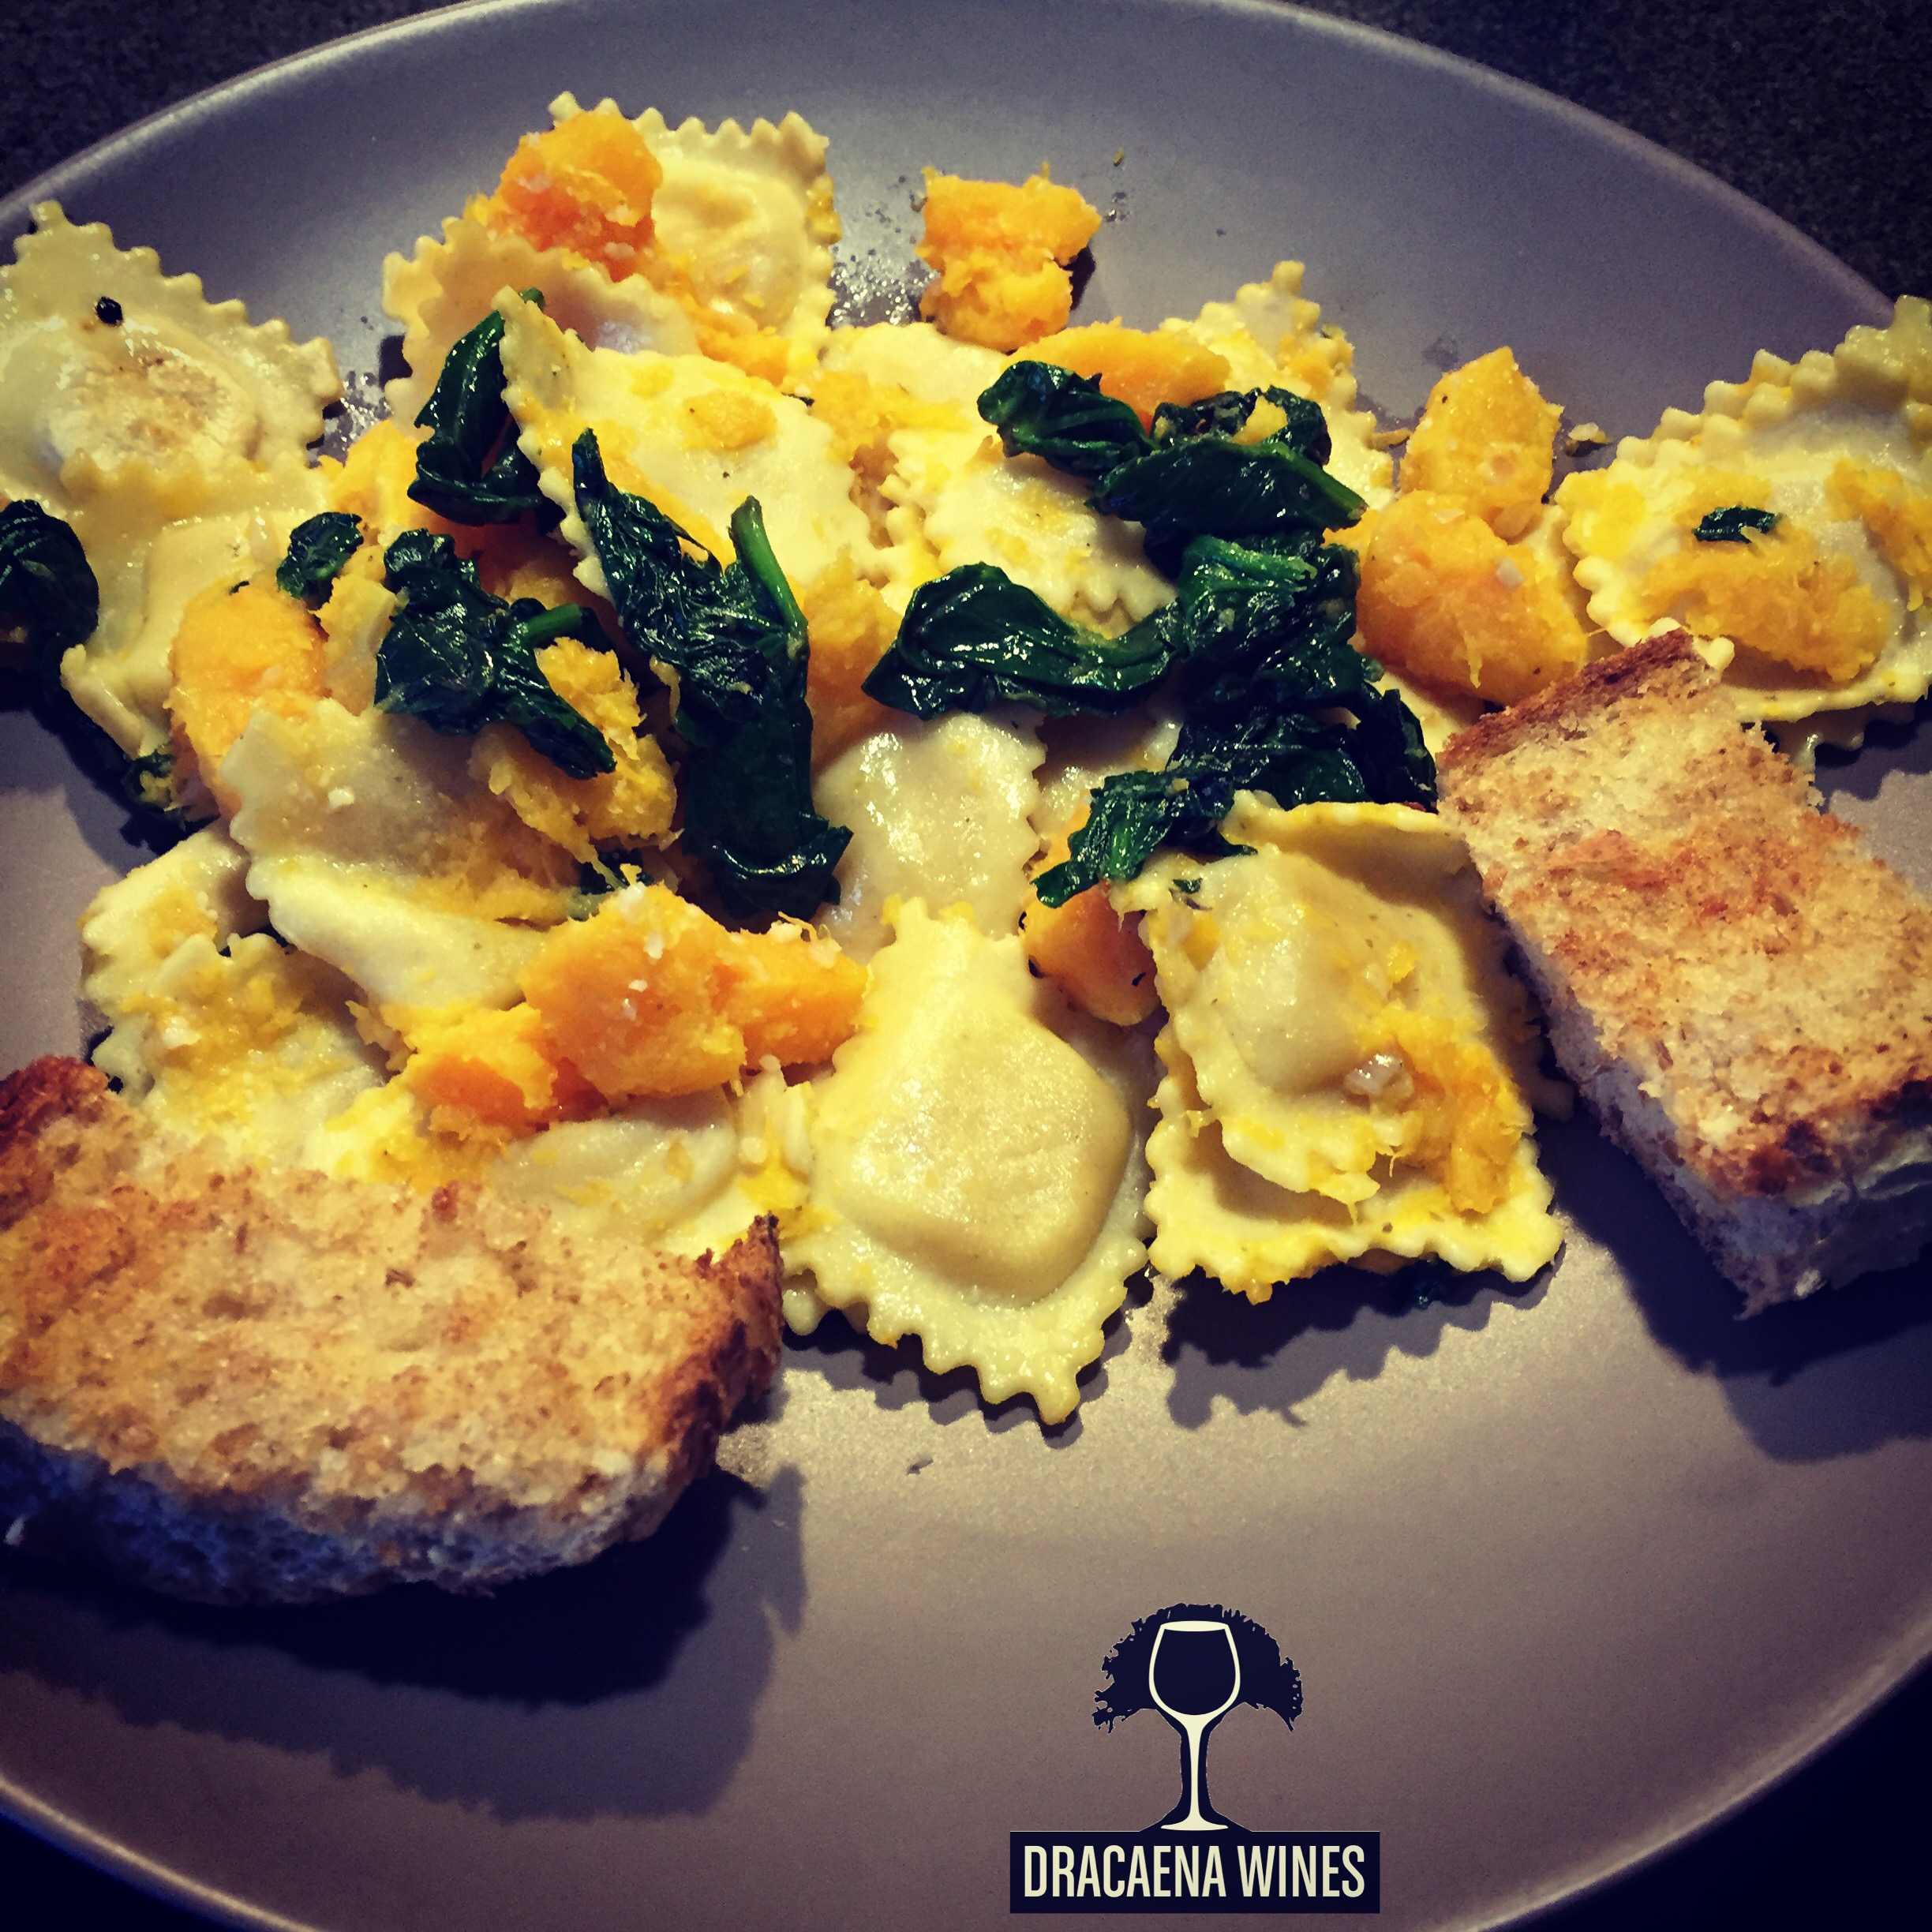 Drachena: recipe for a lush omelet with different ingredients 97